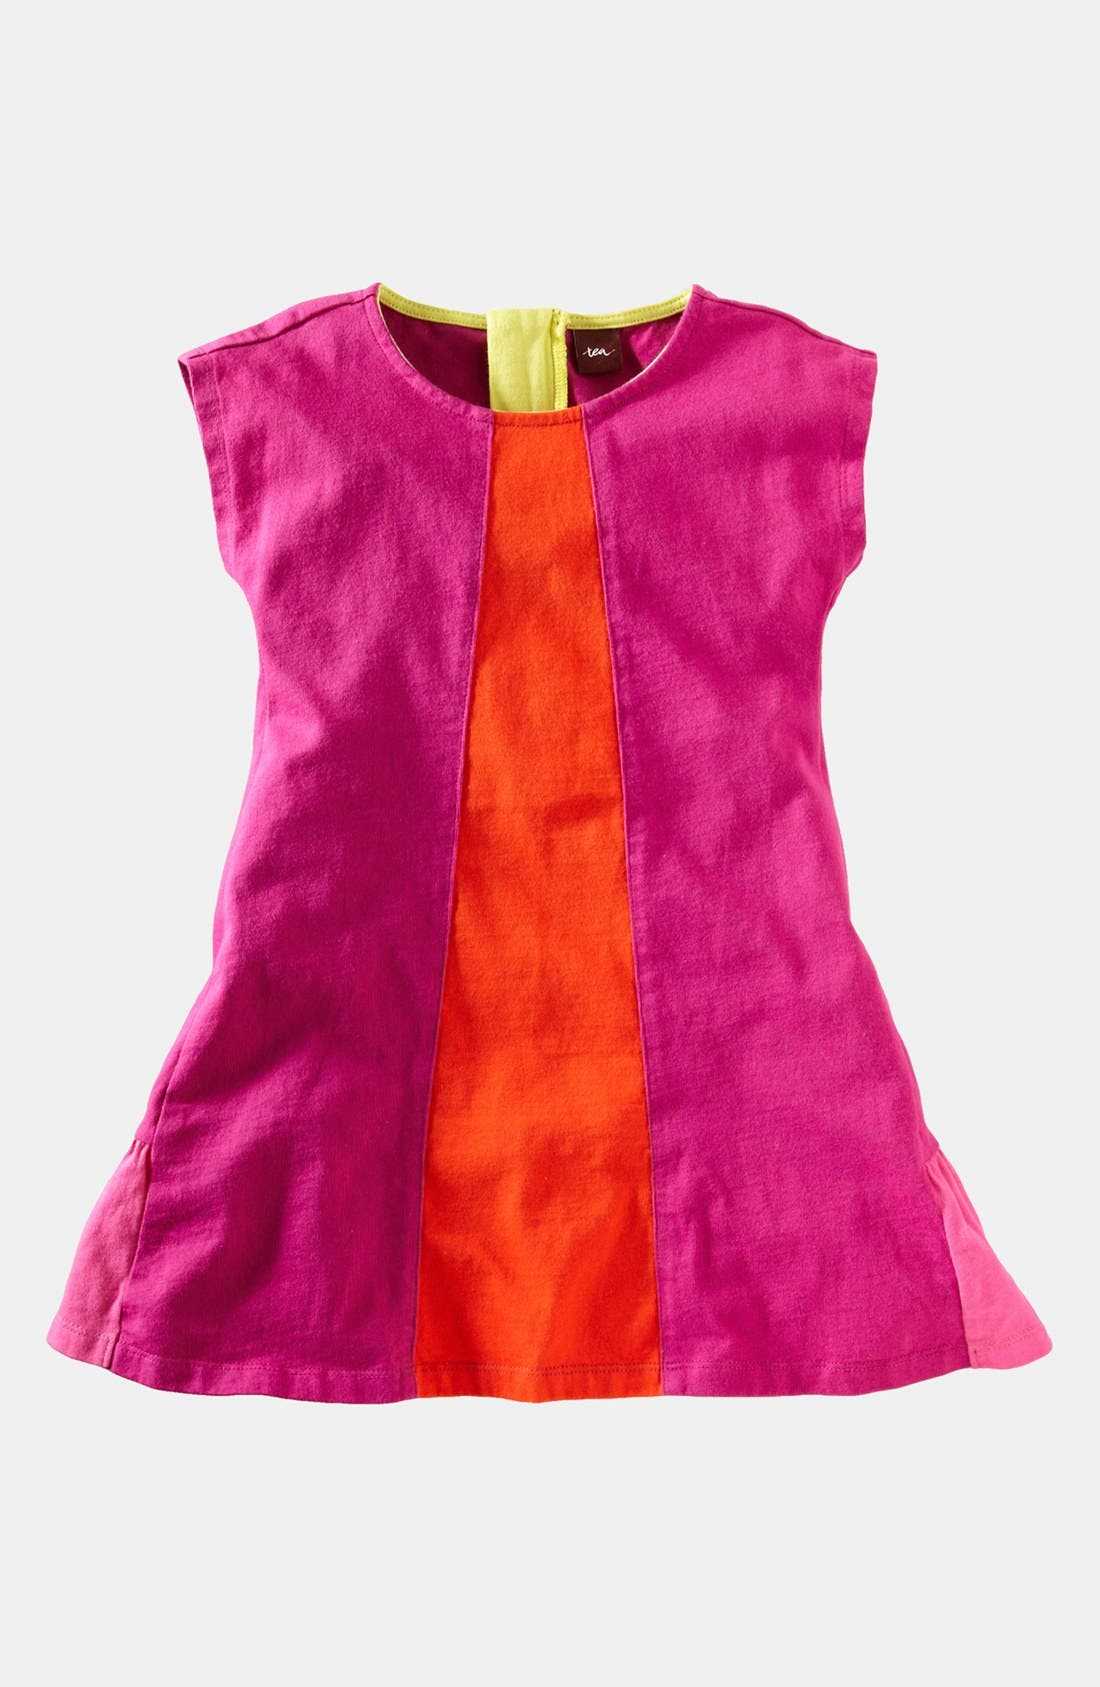 Alternate Image 1 Selected - Tea Collection Colorblock Dress (Baby Girls)